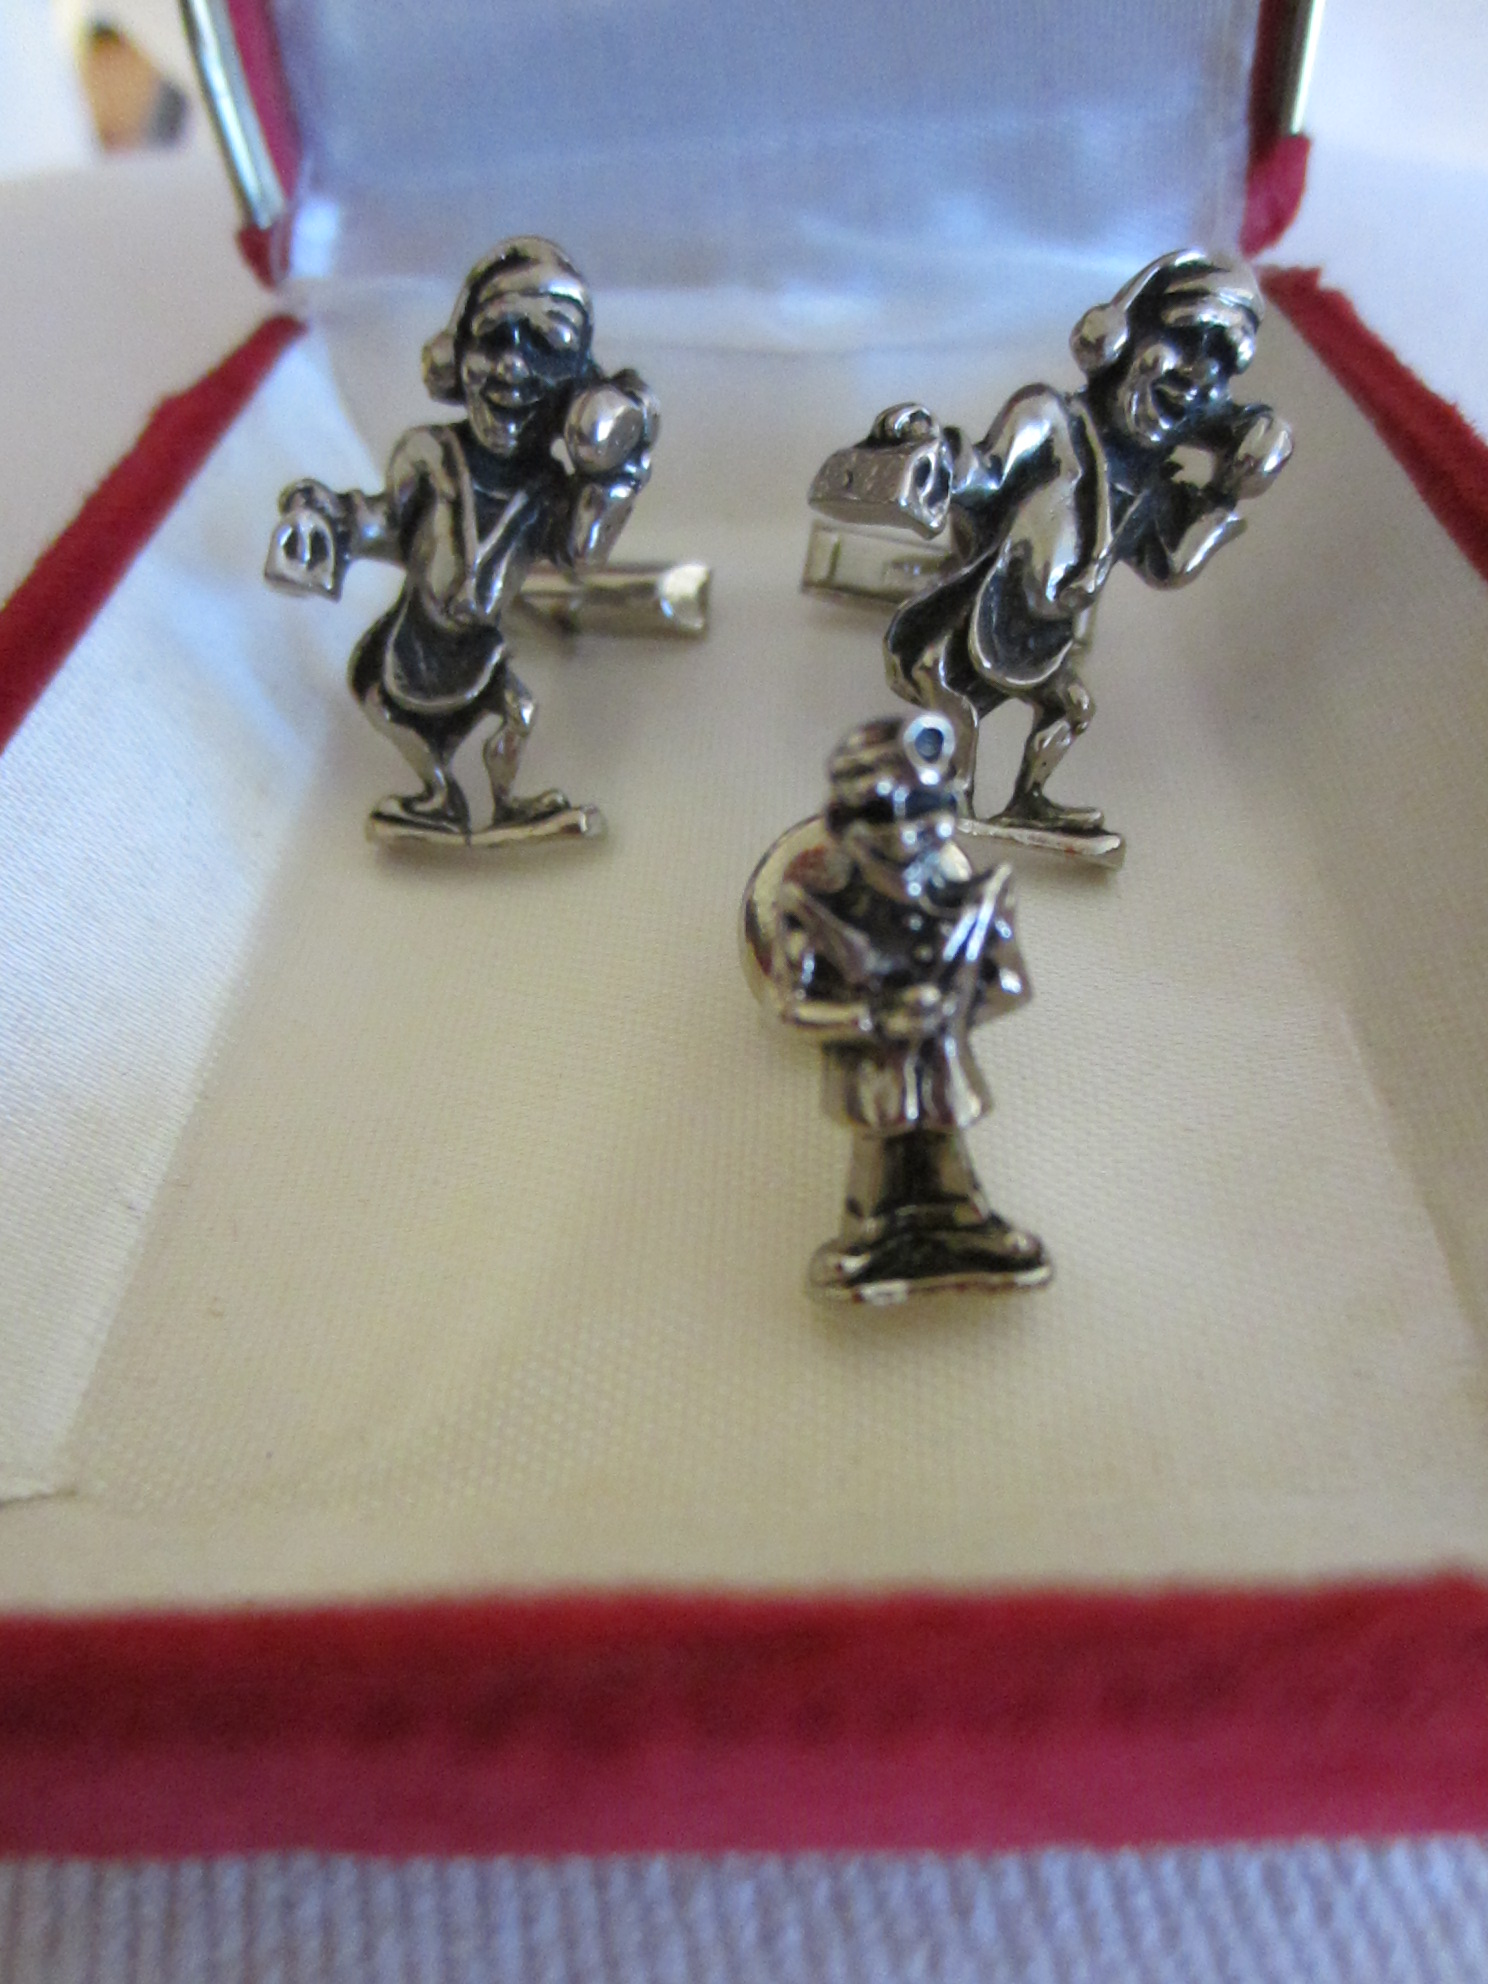 House Visit With Doctor S Bags Set Of Cuff Links And Tie Tack Wit Patent Numbers Engraving On Levers Made Pewter Characteristic Jacob M Oldak